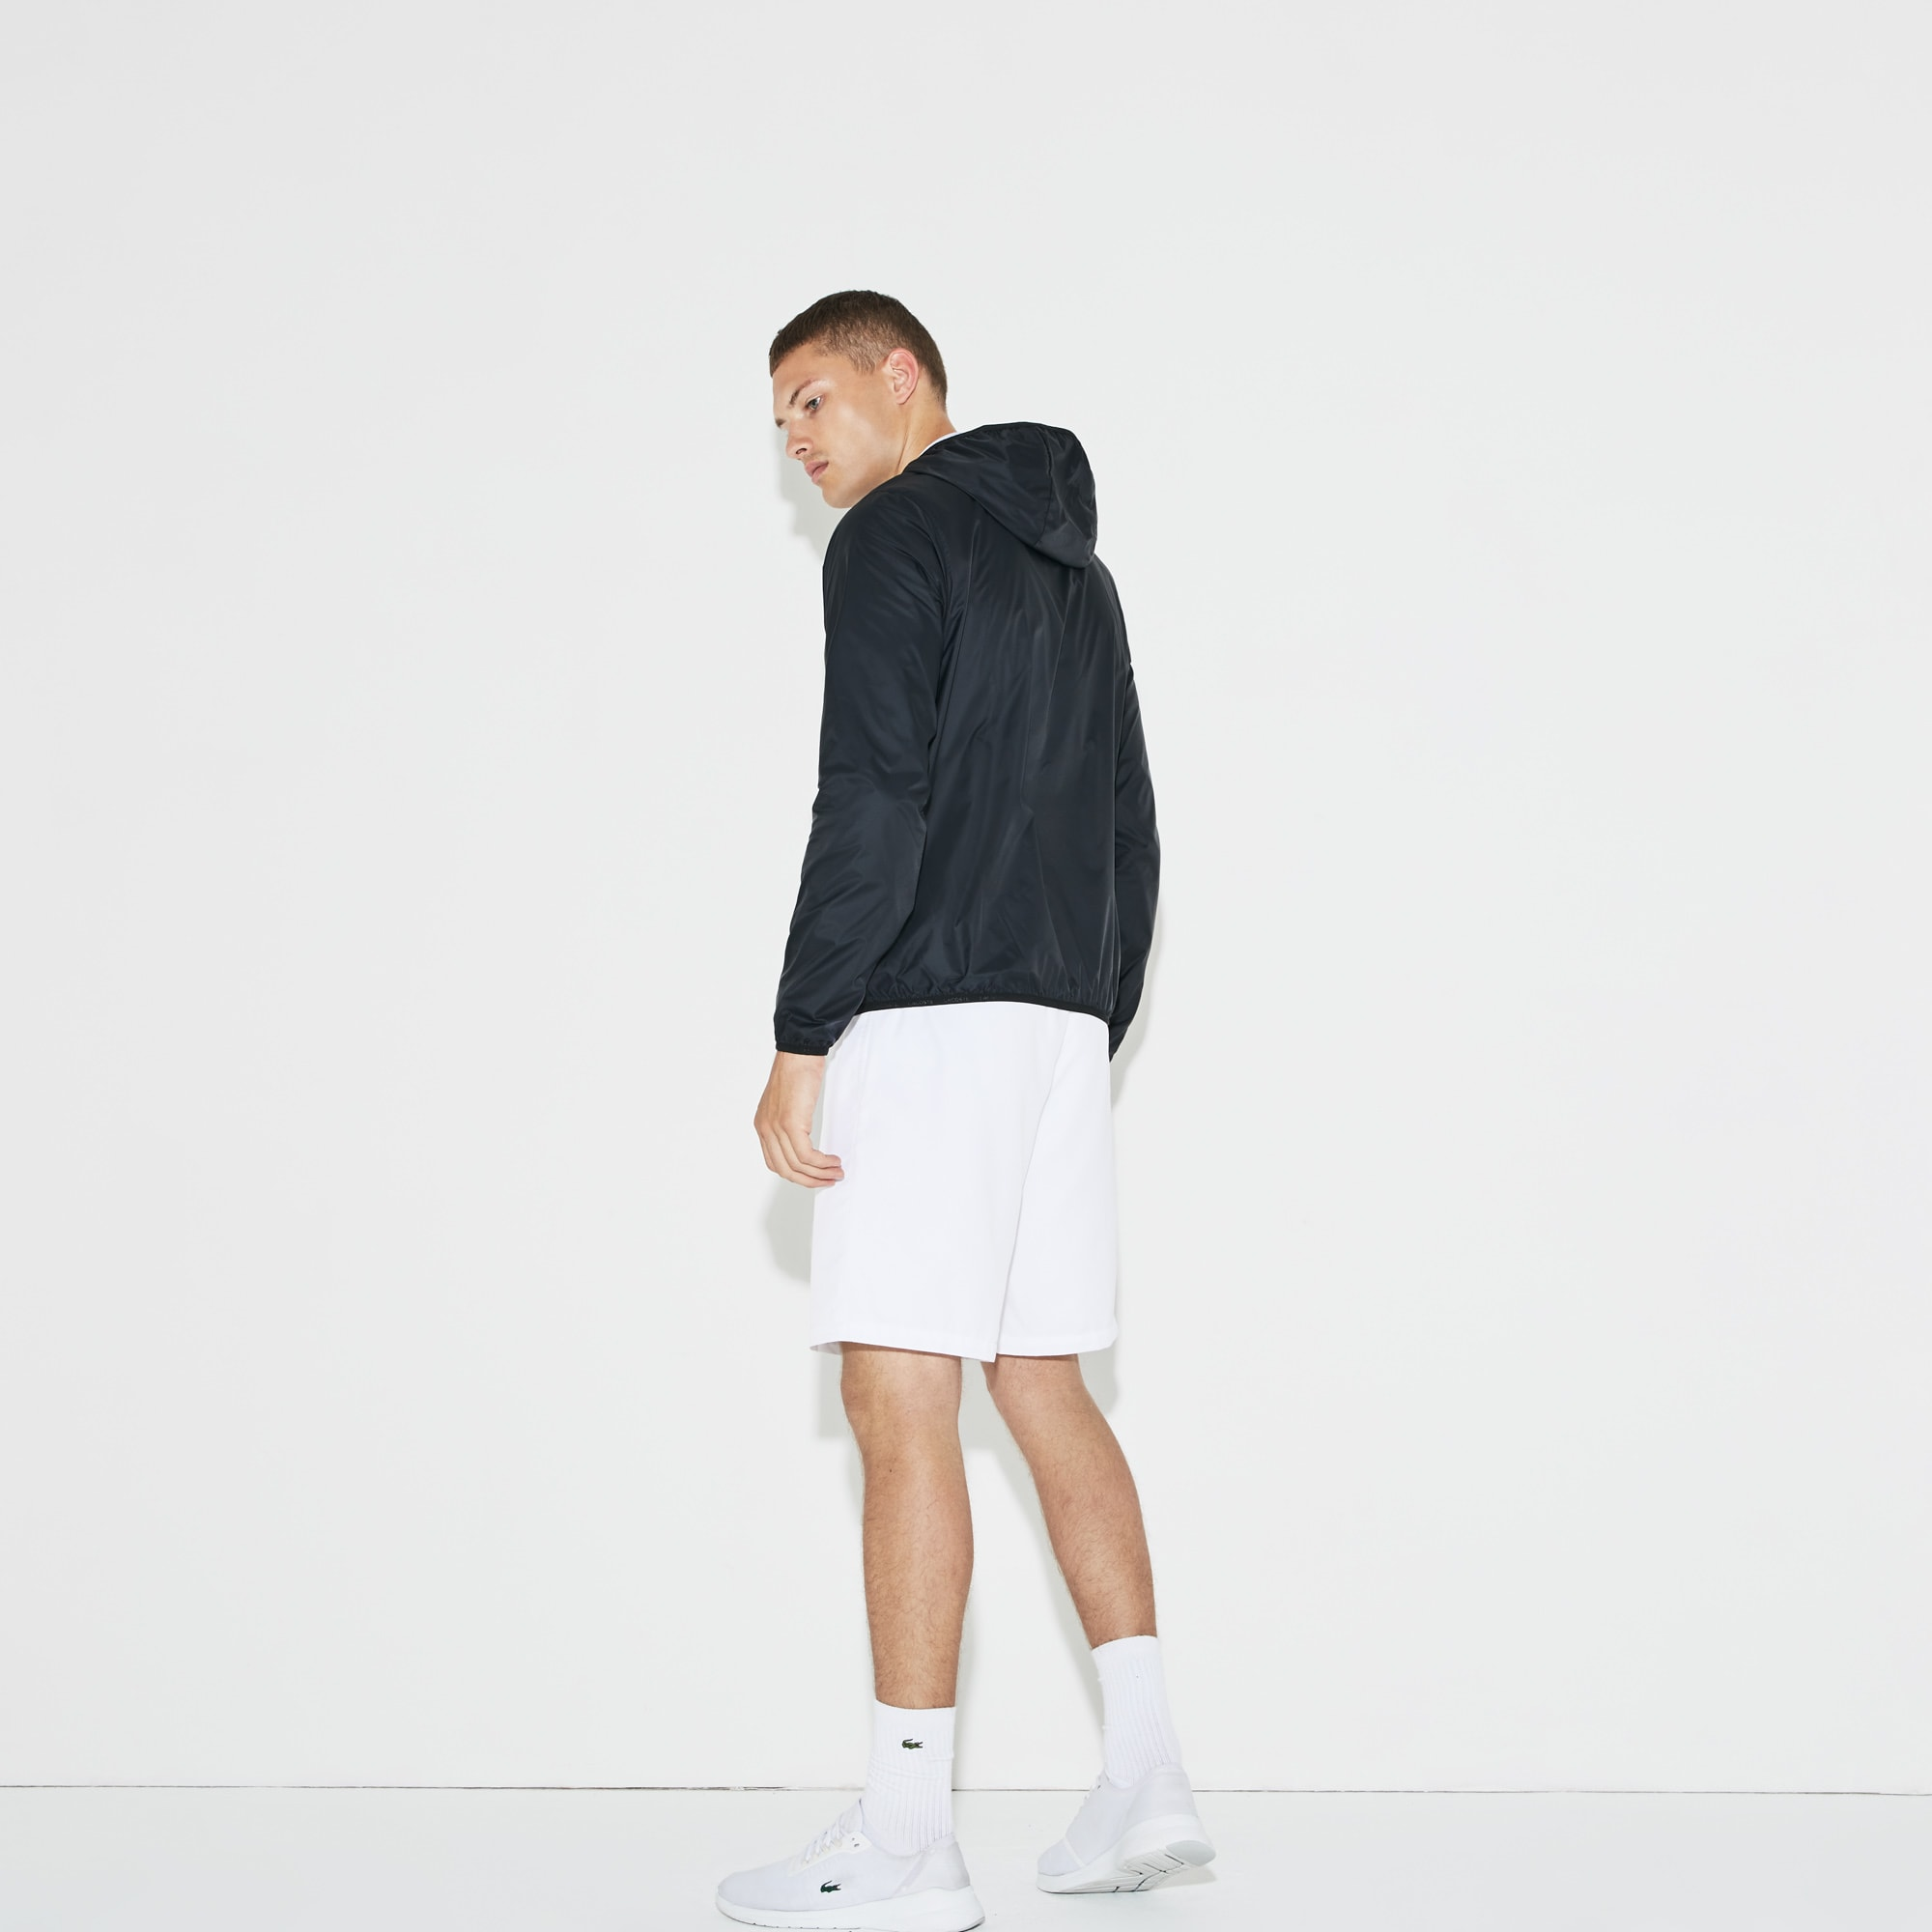 Men's Lacoste SPORT Hooded Technical Tennis Jacket